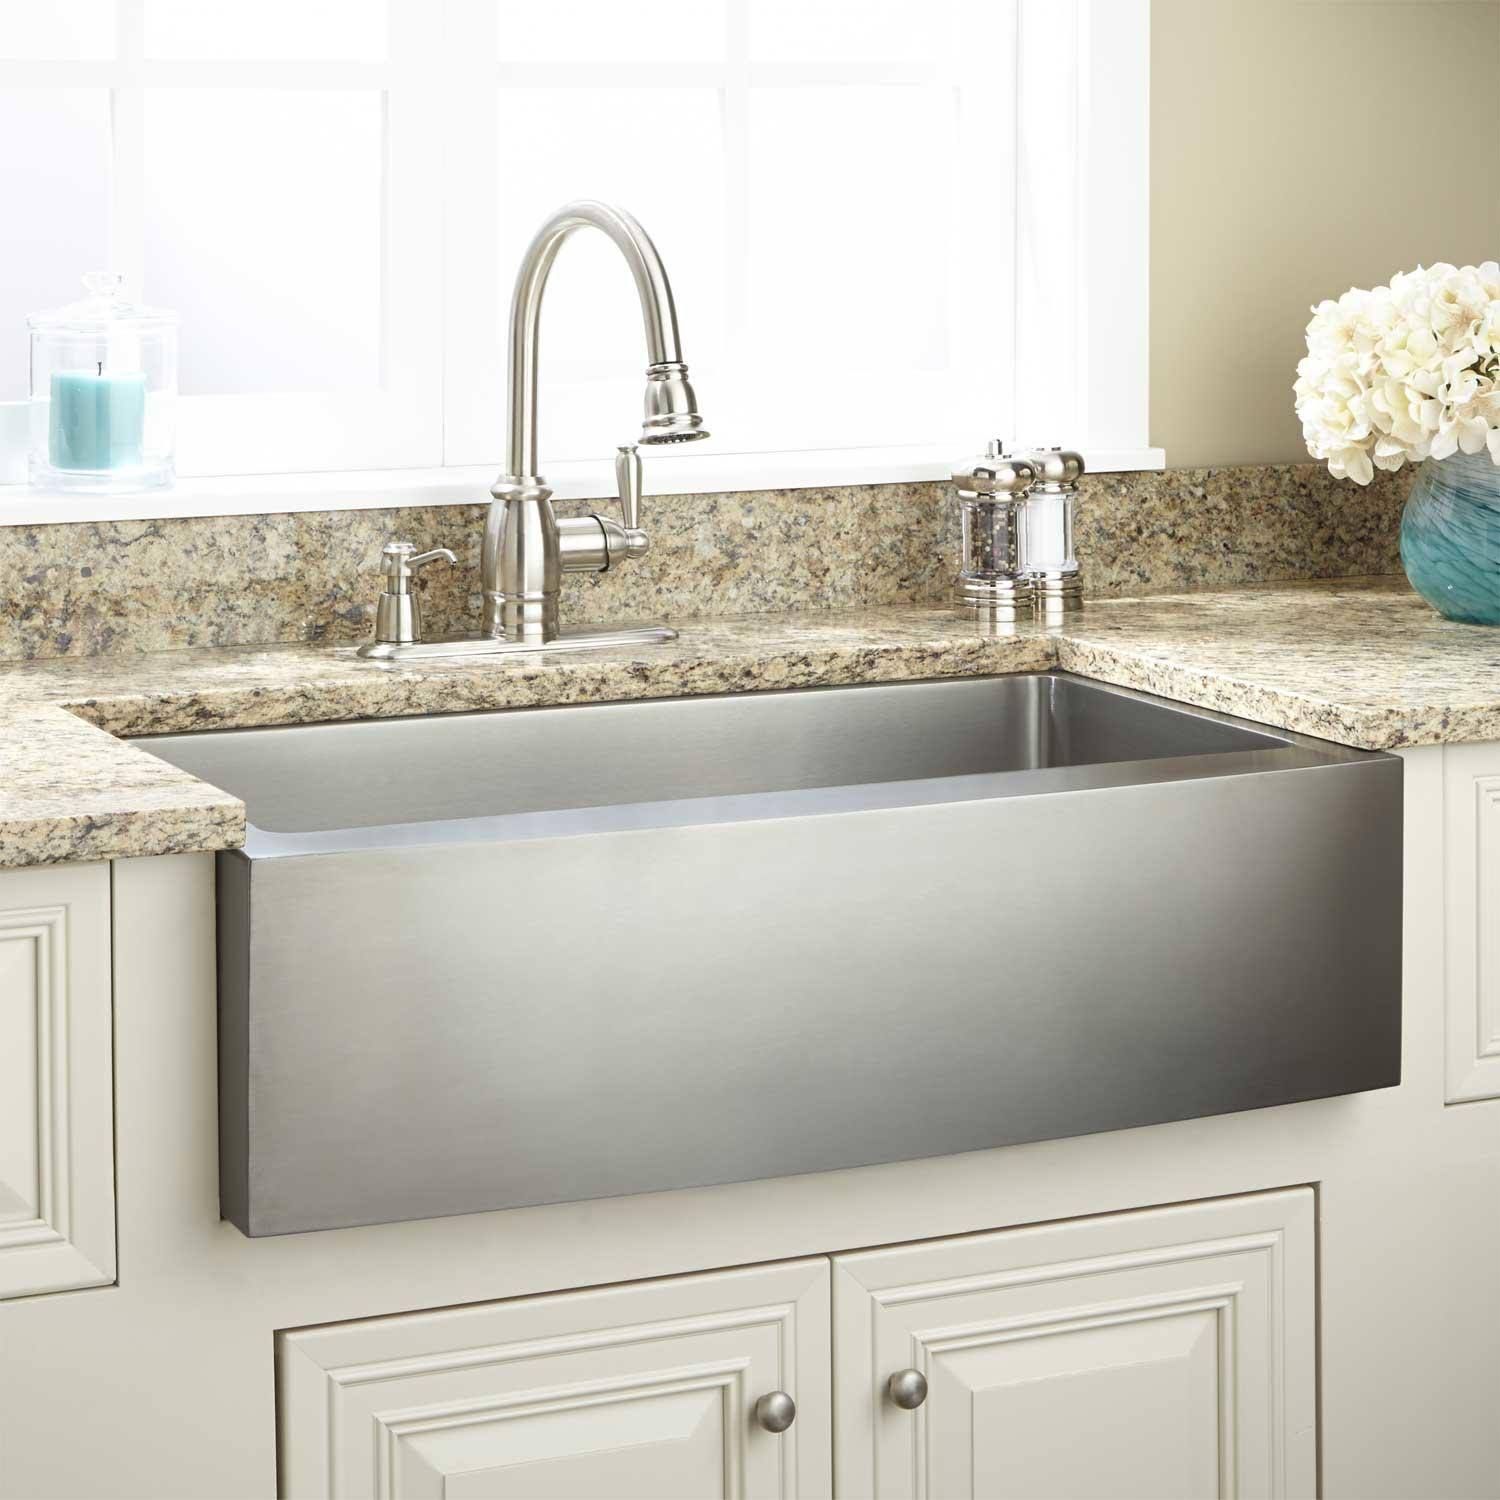 36 Optimum Stainless Steel Farmhouse Sink Curved Front With